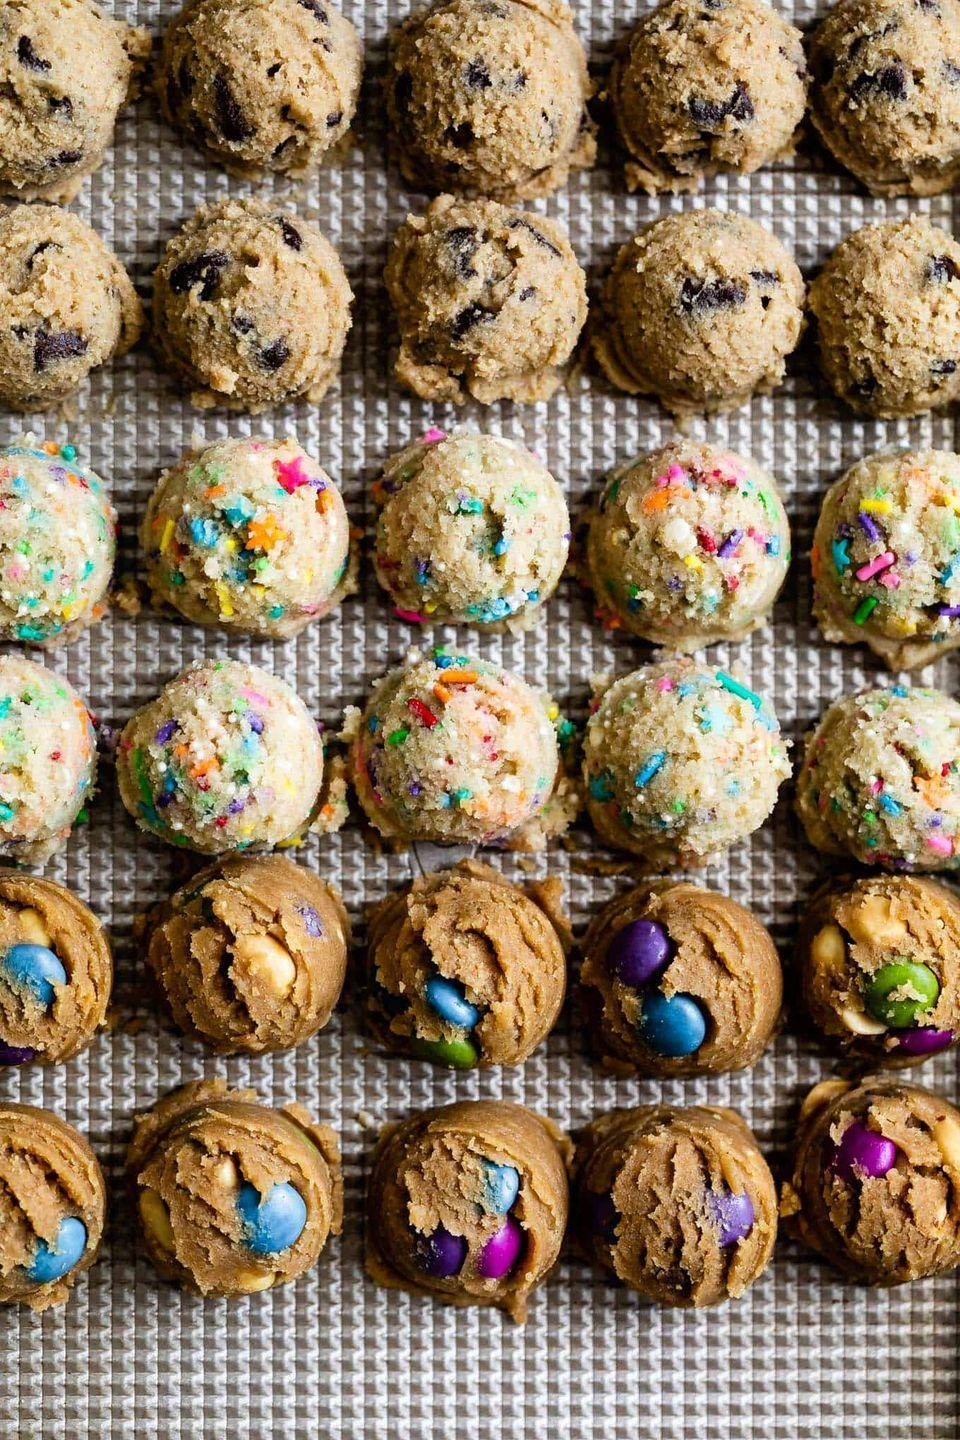 """<p>Let's be honest: Who can resist a scoop or two of cookie dough? Luckily, this version is perfectly safe to dig into. </p><p><a href=""""https://www.snixykitchen.com/gluten-free-edible-cookie-dough/"""" rel=""""nofollow noopener"""" target=""""_blank"""" data-ylk=""""slk:Get the recipe"""" class=""""link rapid-noclick-resp"""">Get the recipe</a>.</p>"""